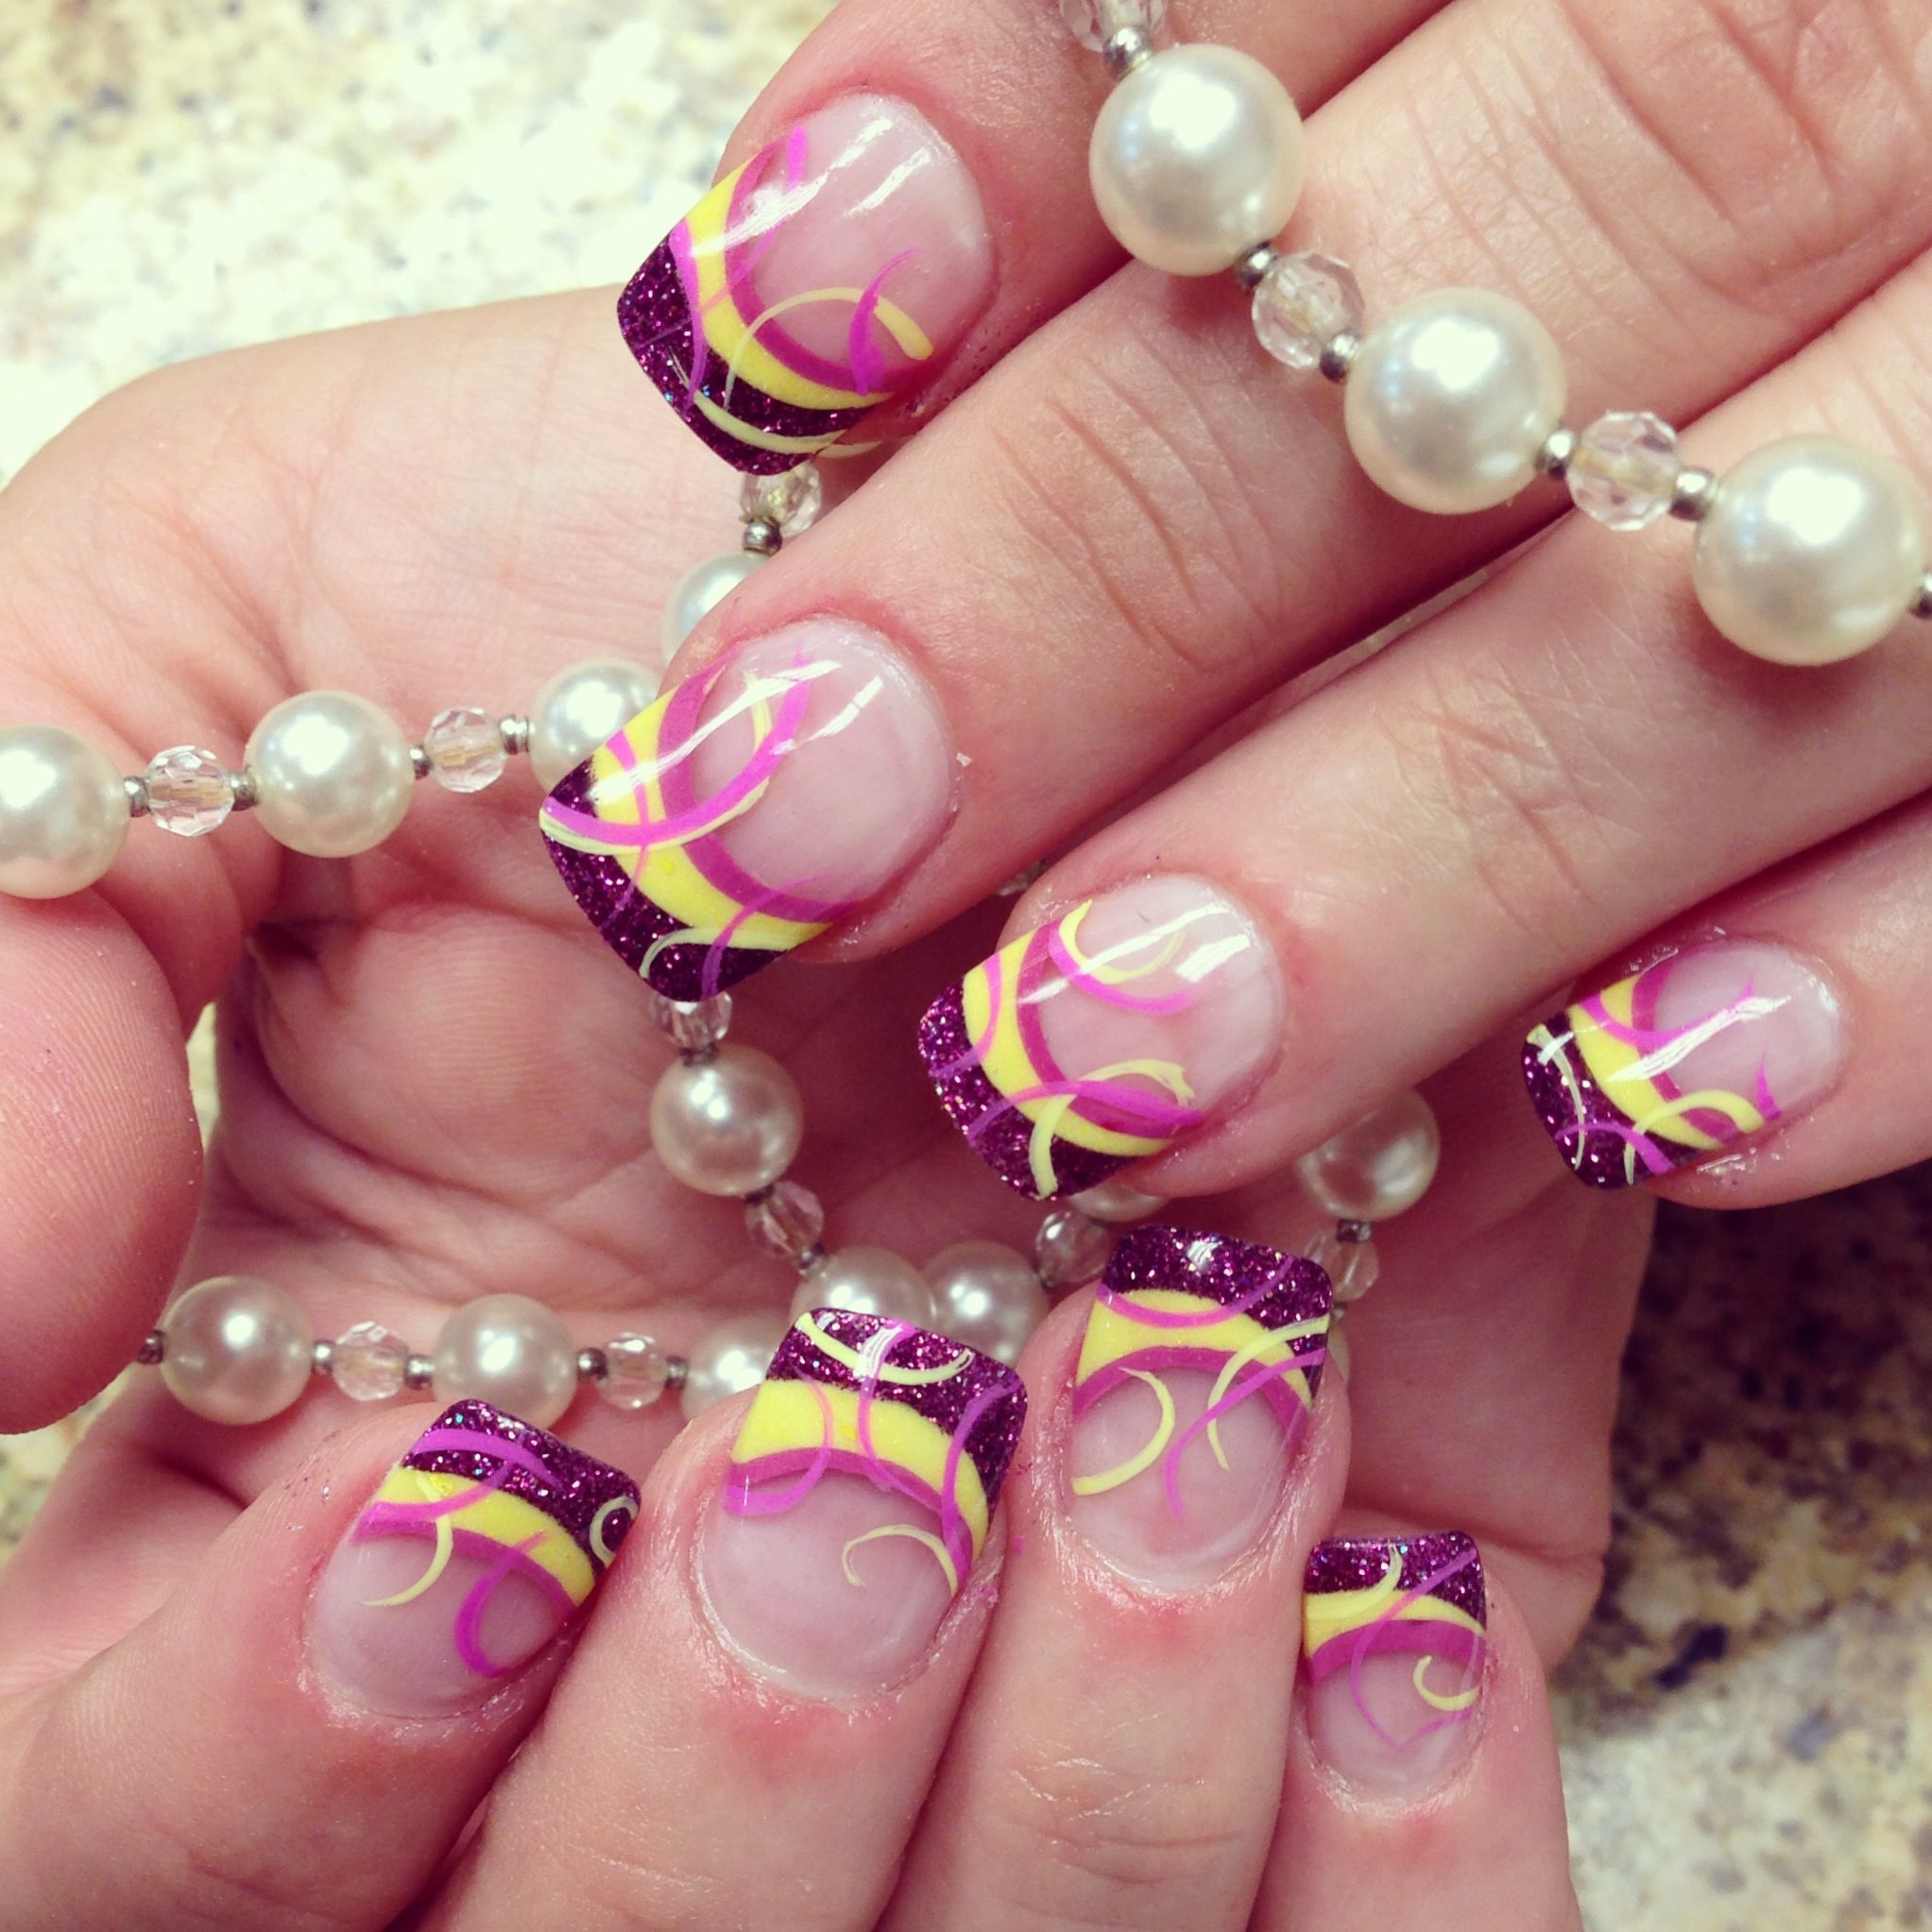 Fun fuschia and yellow nails | Nails by The Haute Spot | Pinterest ...